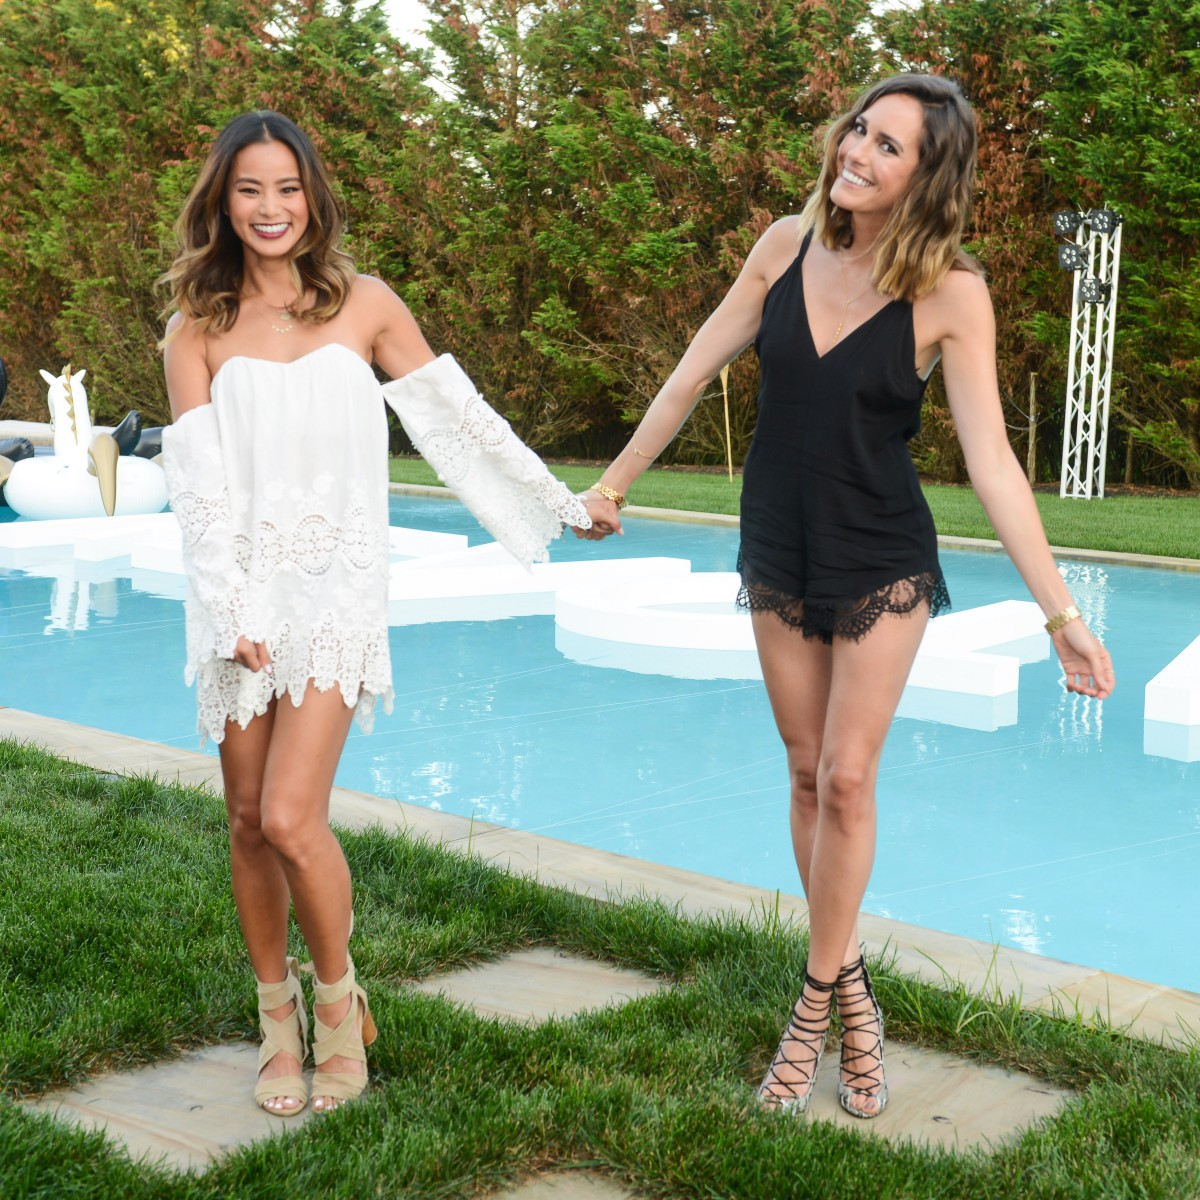 REVOLVE and People StyleWatch Summer Party Hosted by JAMIE CHUNG and LOUISE ROE Sponsored by DELEON TEQUILA